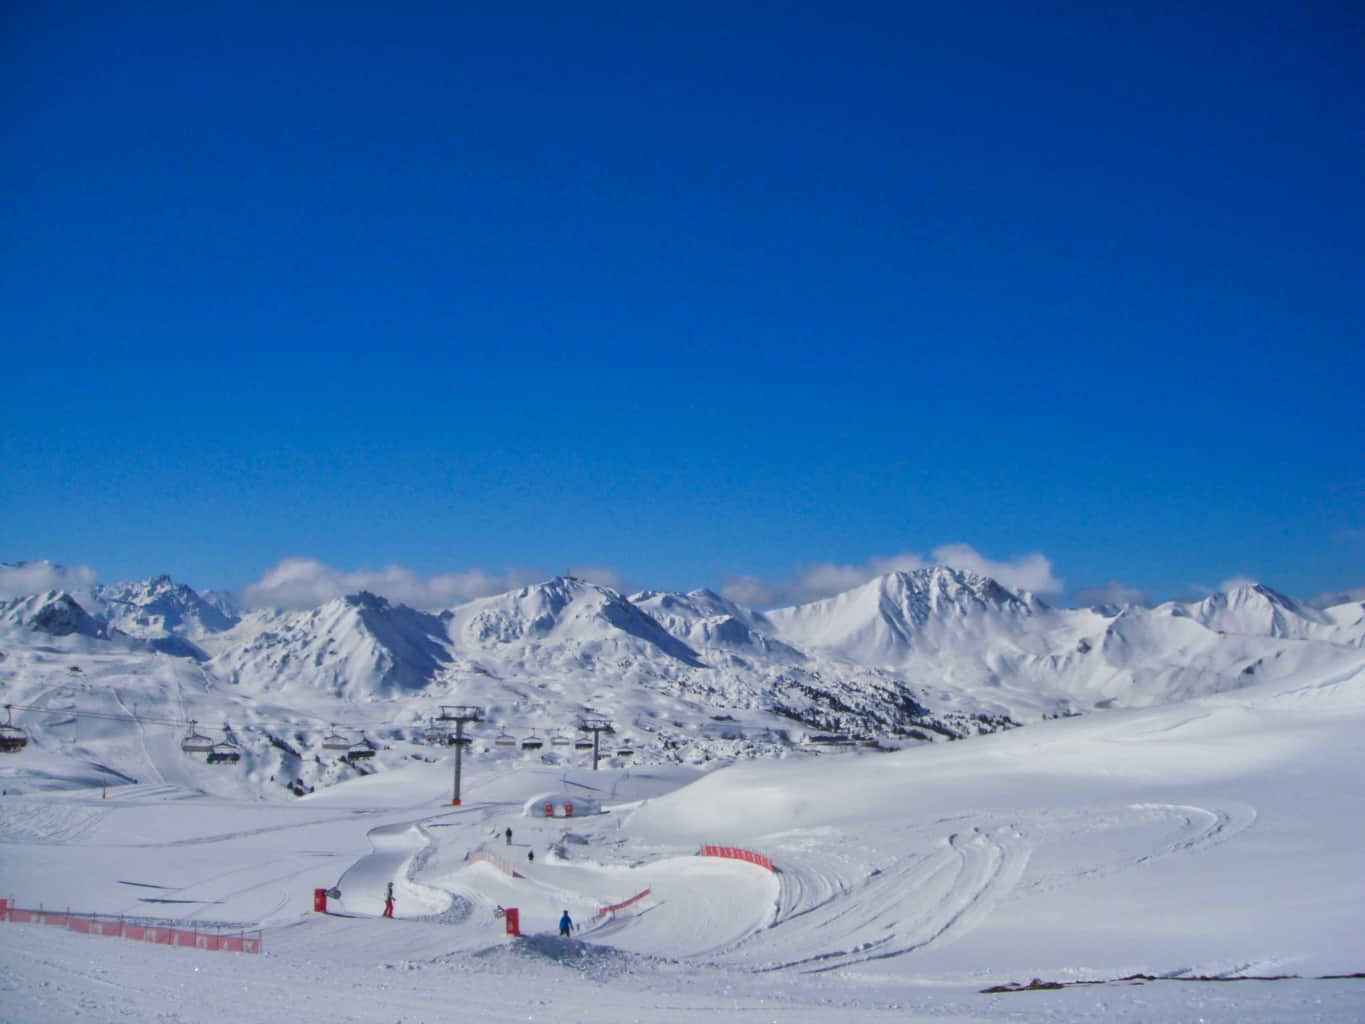 Ski slopes in Les Arcs with deep blue sky